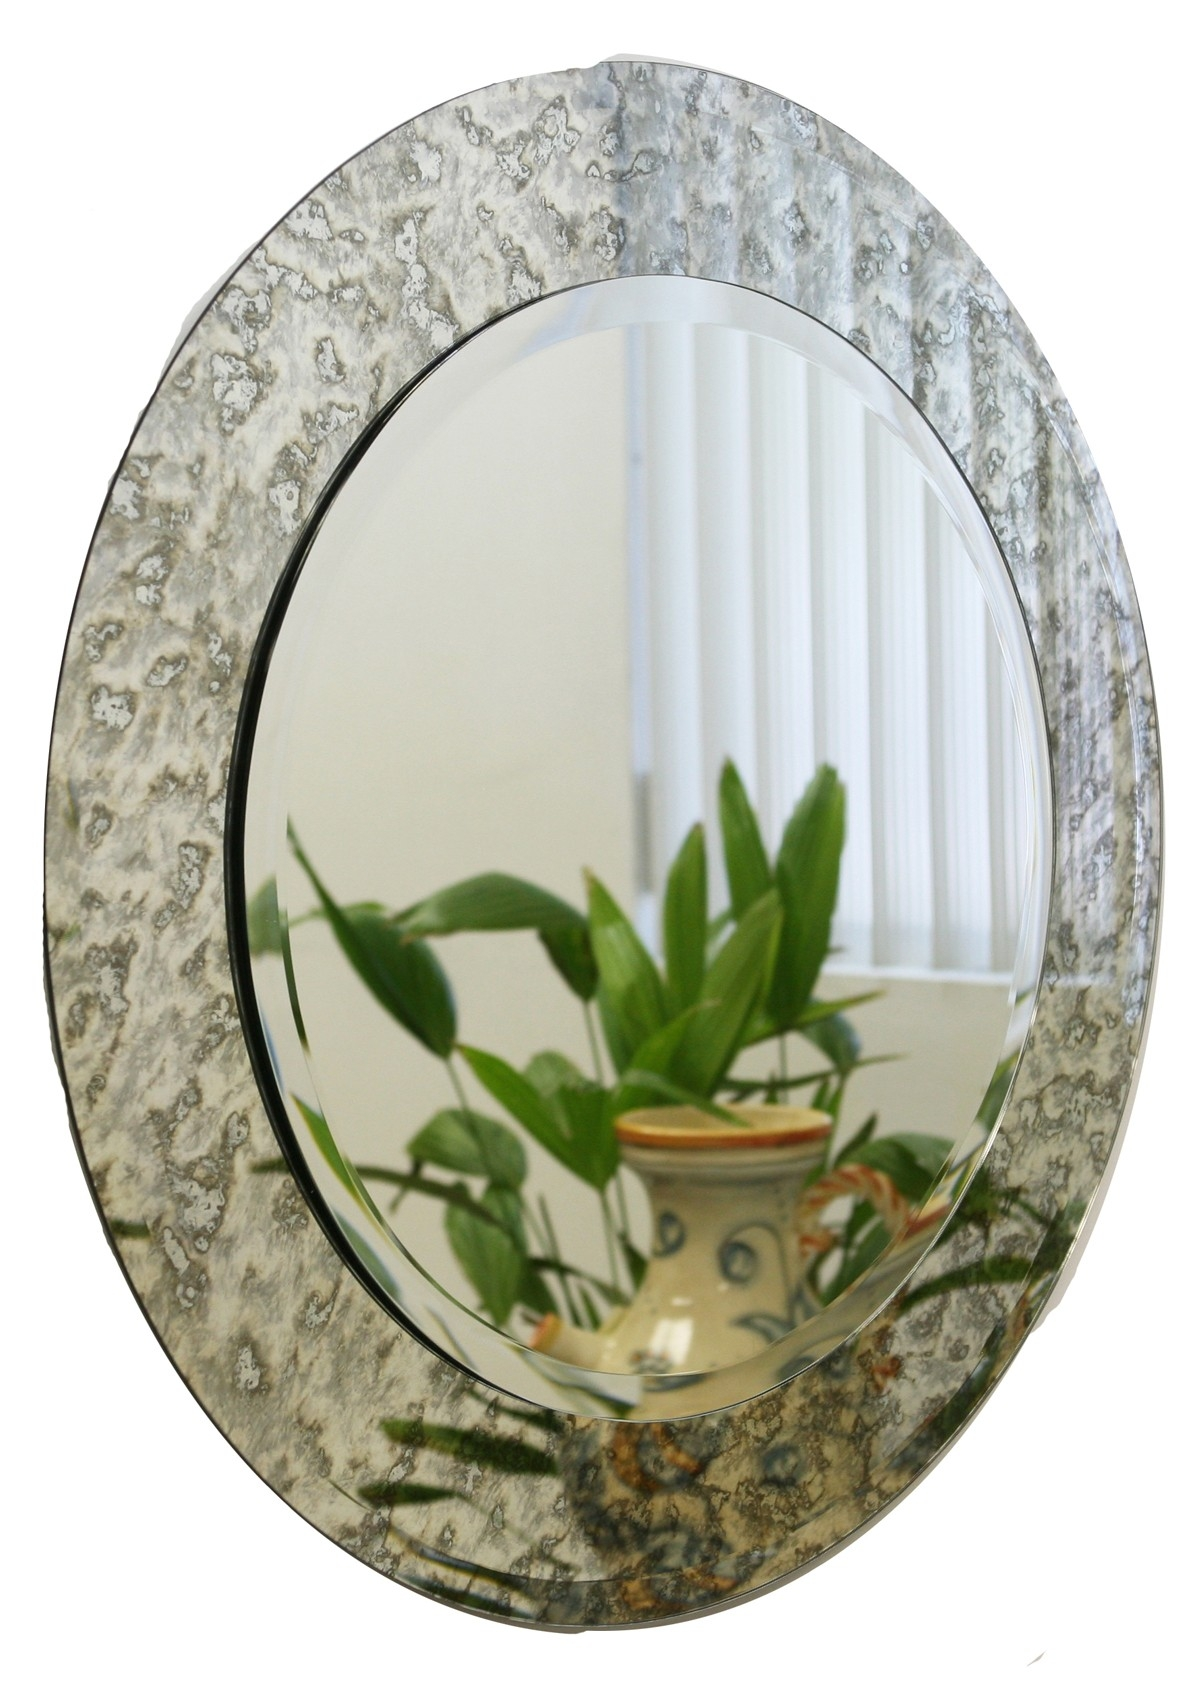 Round Antique Mirrors Vintage Antiqued Mirrors Within Round Antique Mirrors (Image 10 of 15)